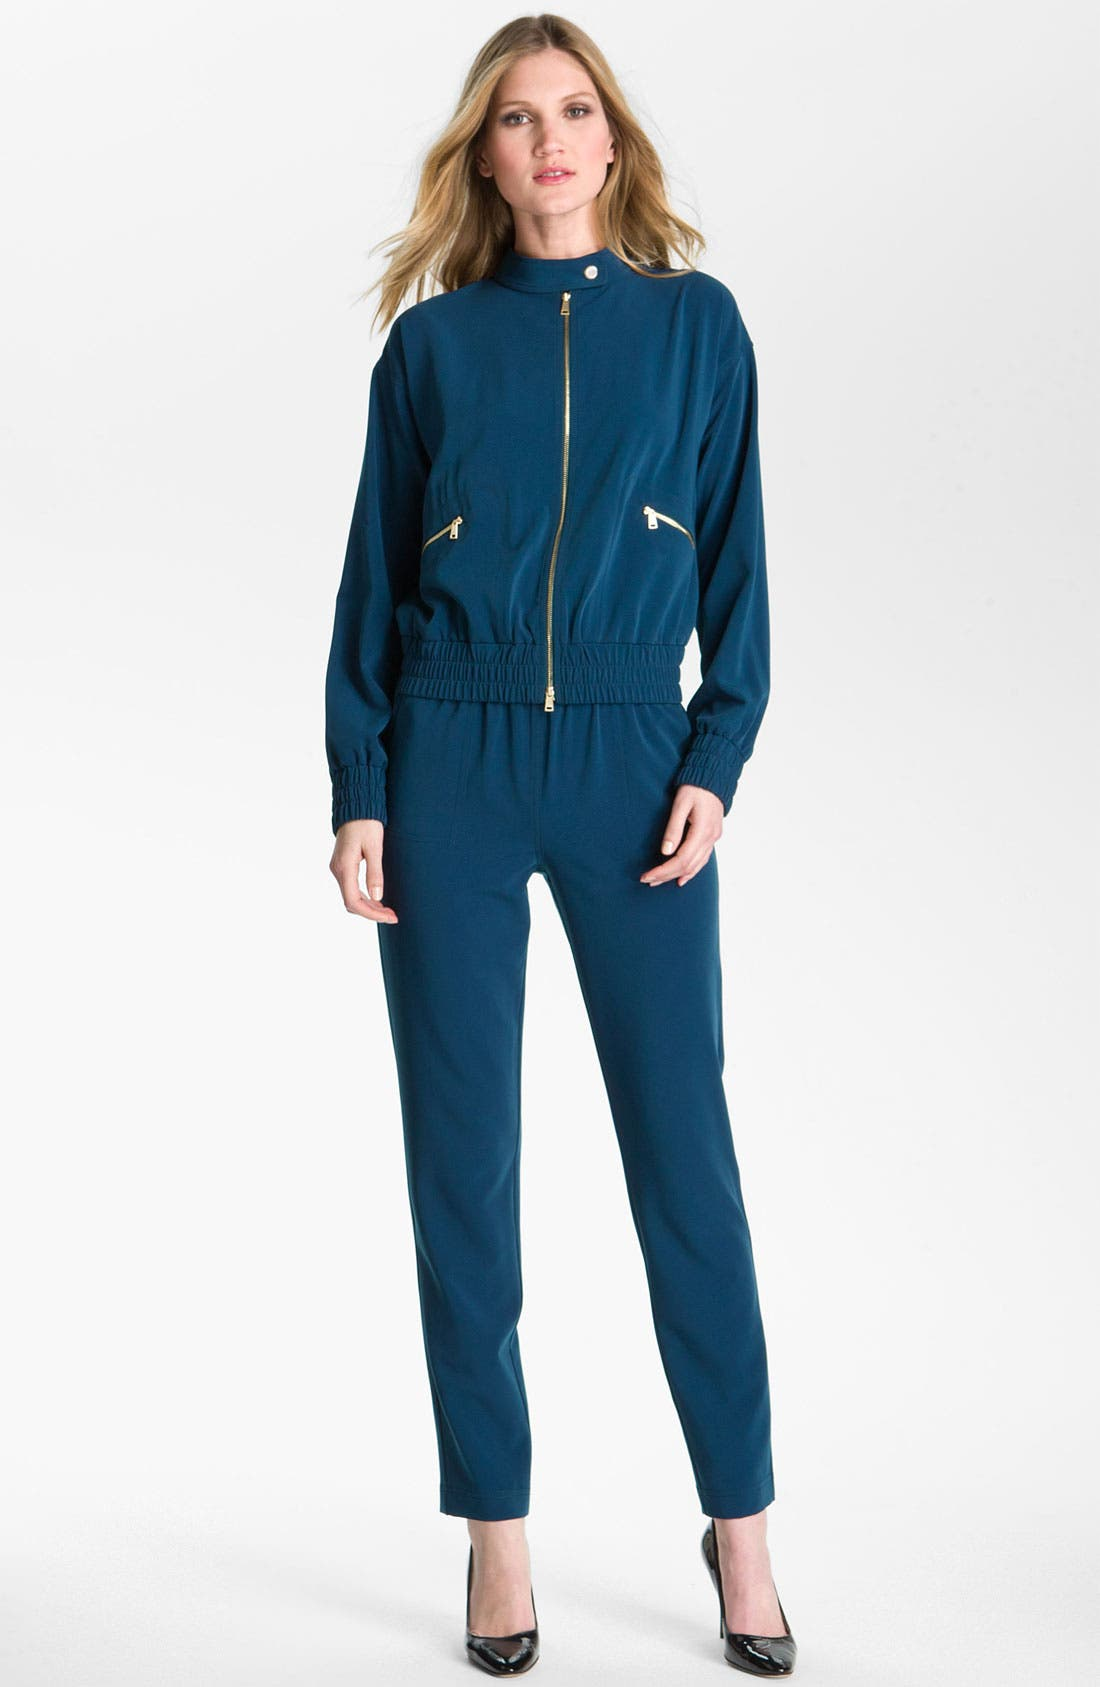 Main Image - St. John Yellow Label Pull On Twill Ankle Pants